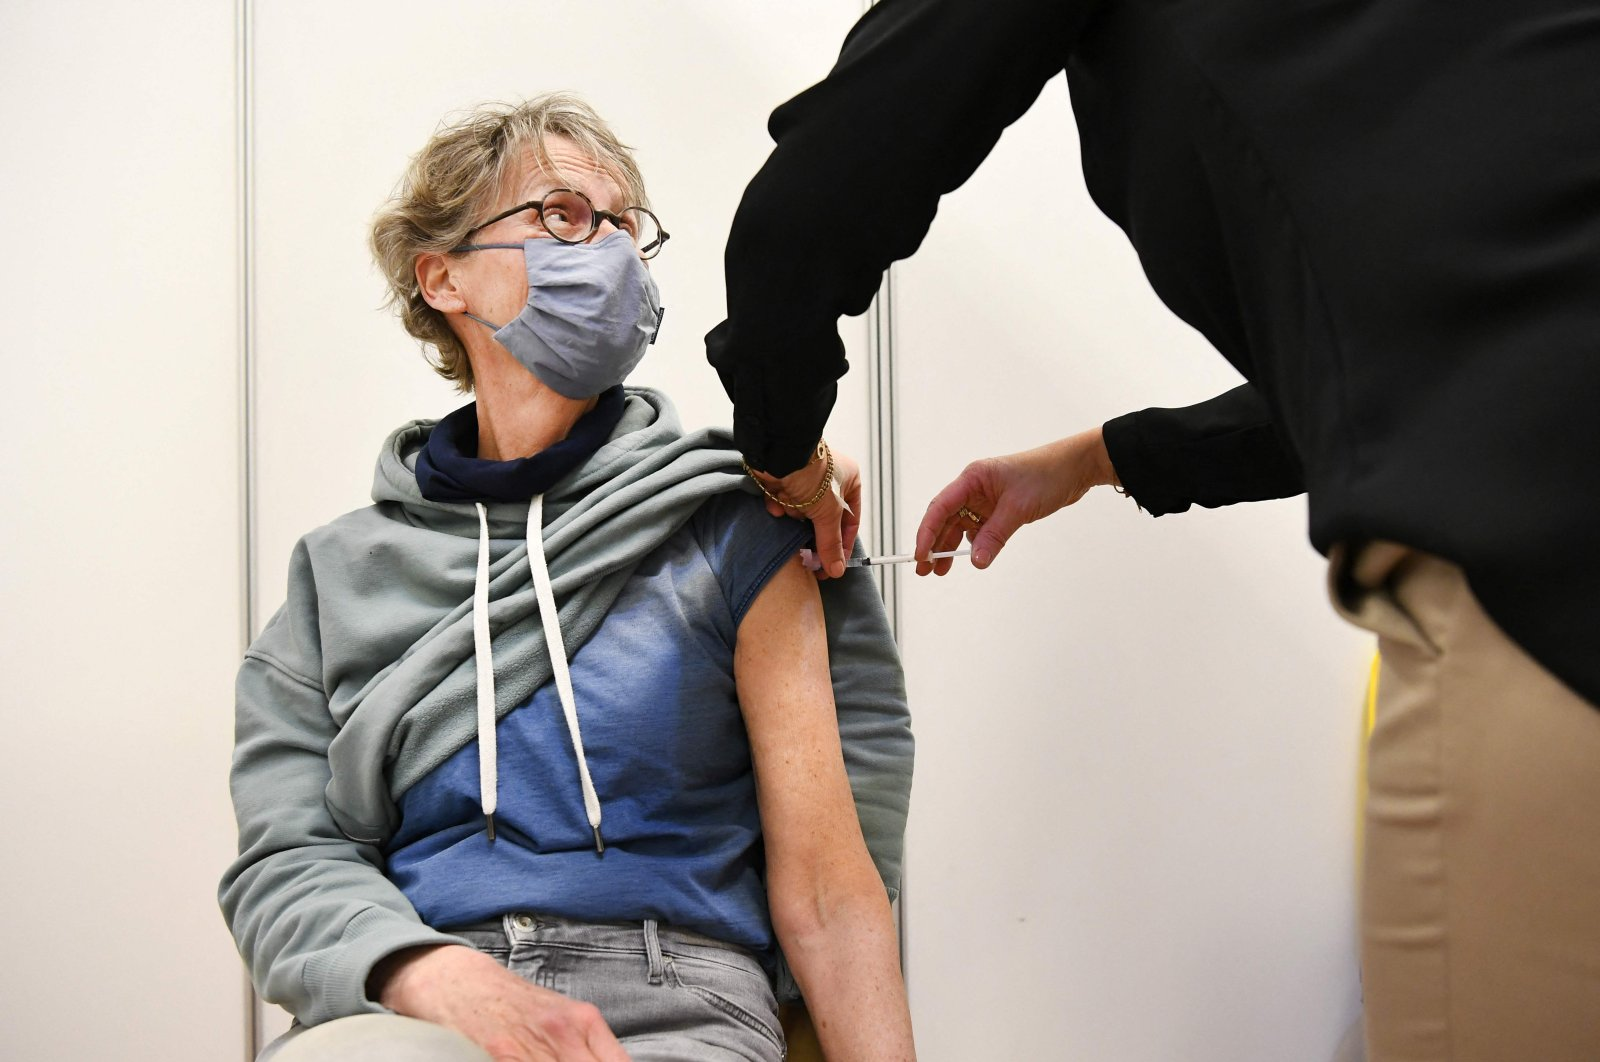 A general practitioner administers a dose of AstraZeneca's COVID-19 jab to a patient during a vaccination campaign in Ede, the Netherlands, March 20, 2021. (AFP Photo)